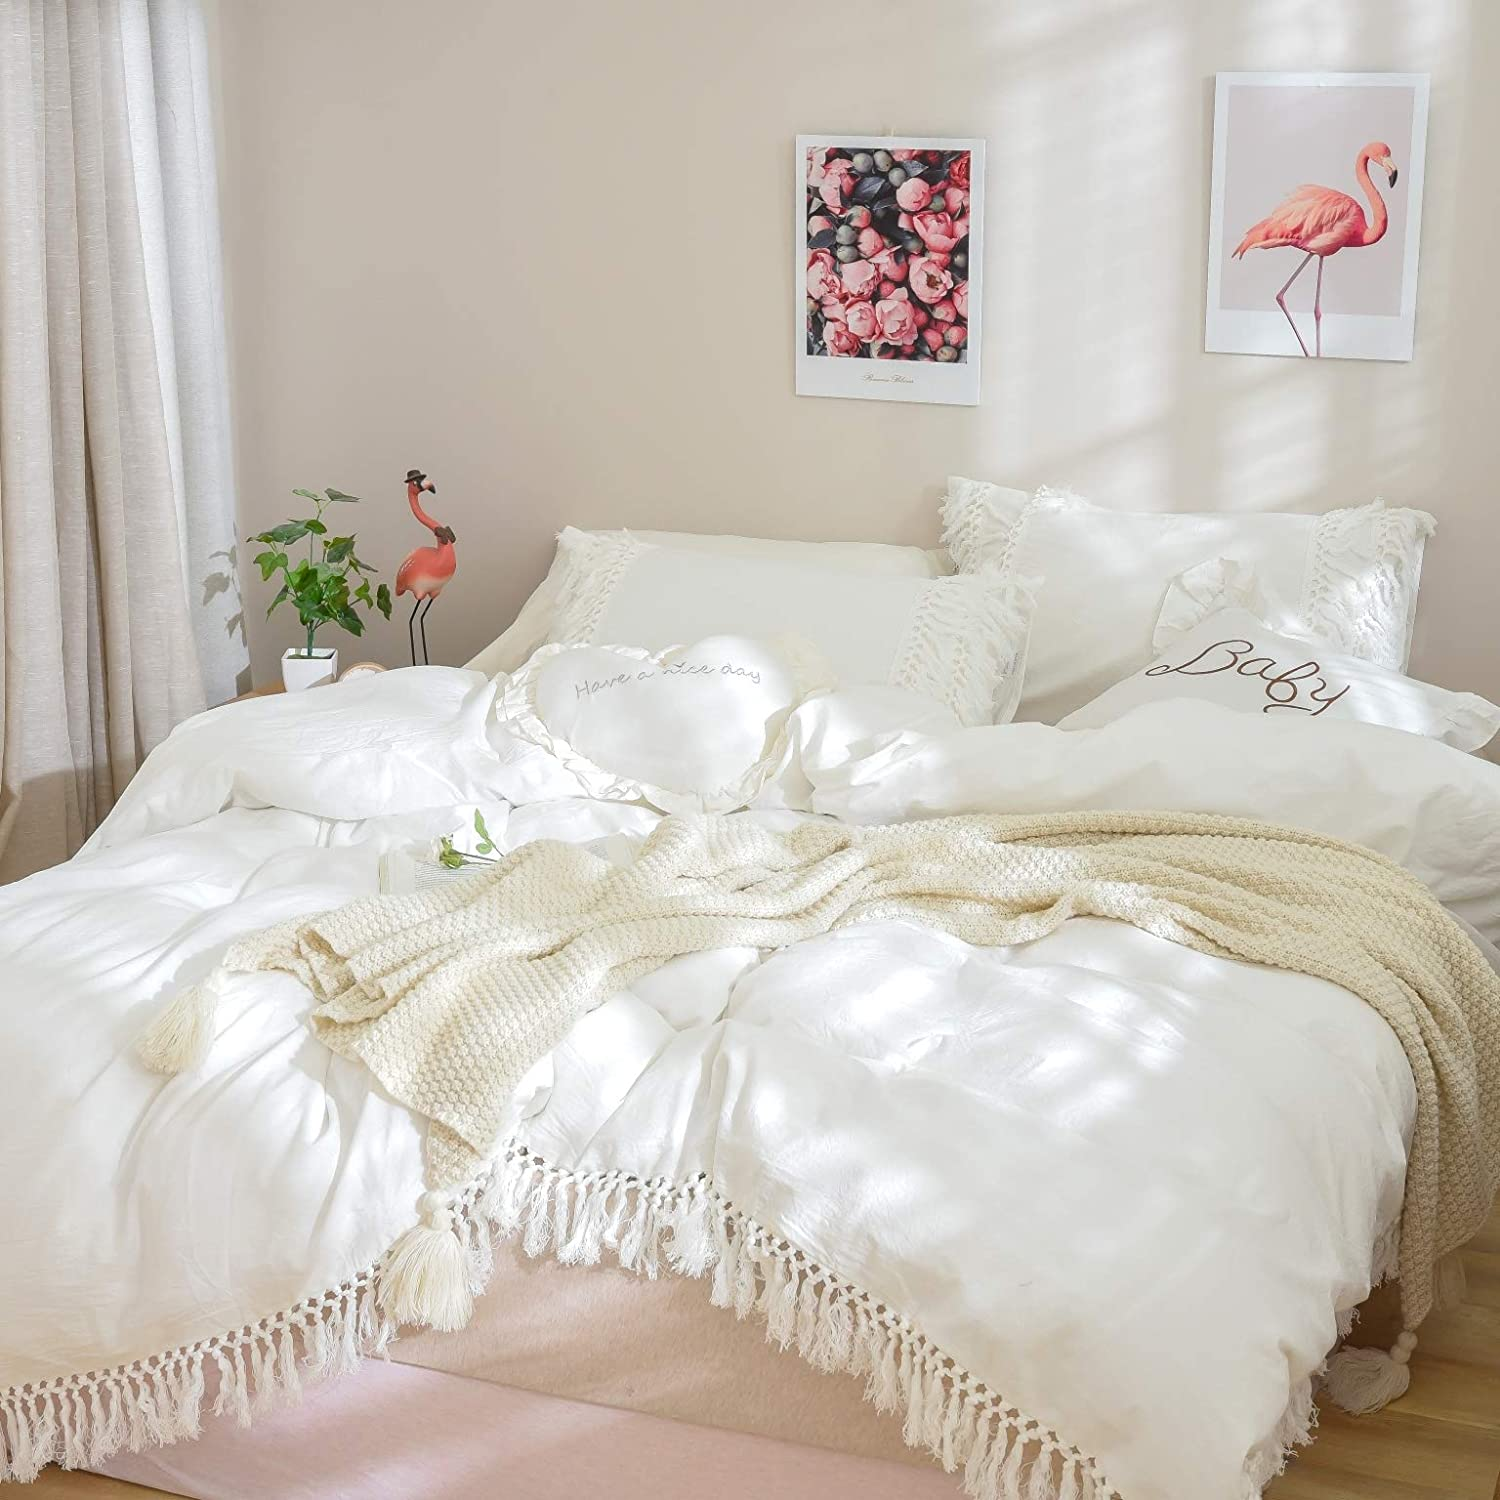 Softta California King Duvet Cover 3 Pcs Boho Bedding Fringed Vintage and ShabbyTassel and Ruffle Bohemian Quilt Cover 100% Washed Cotton